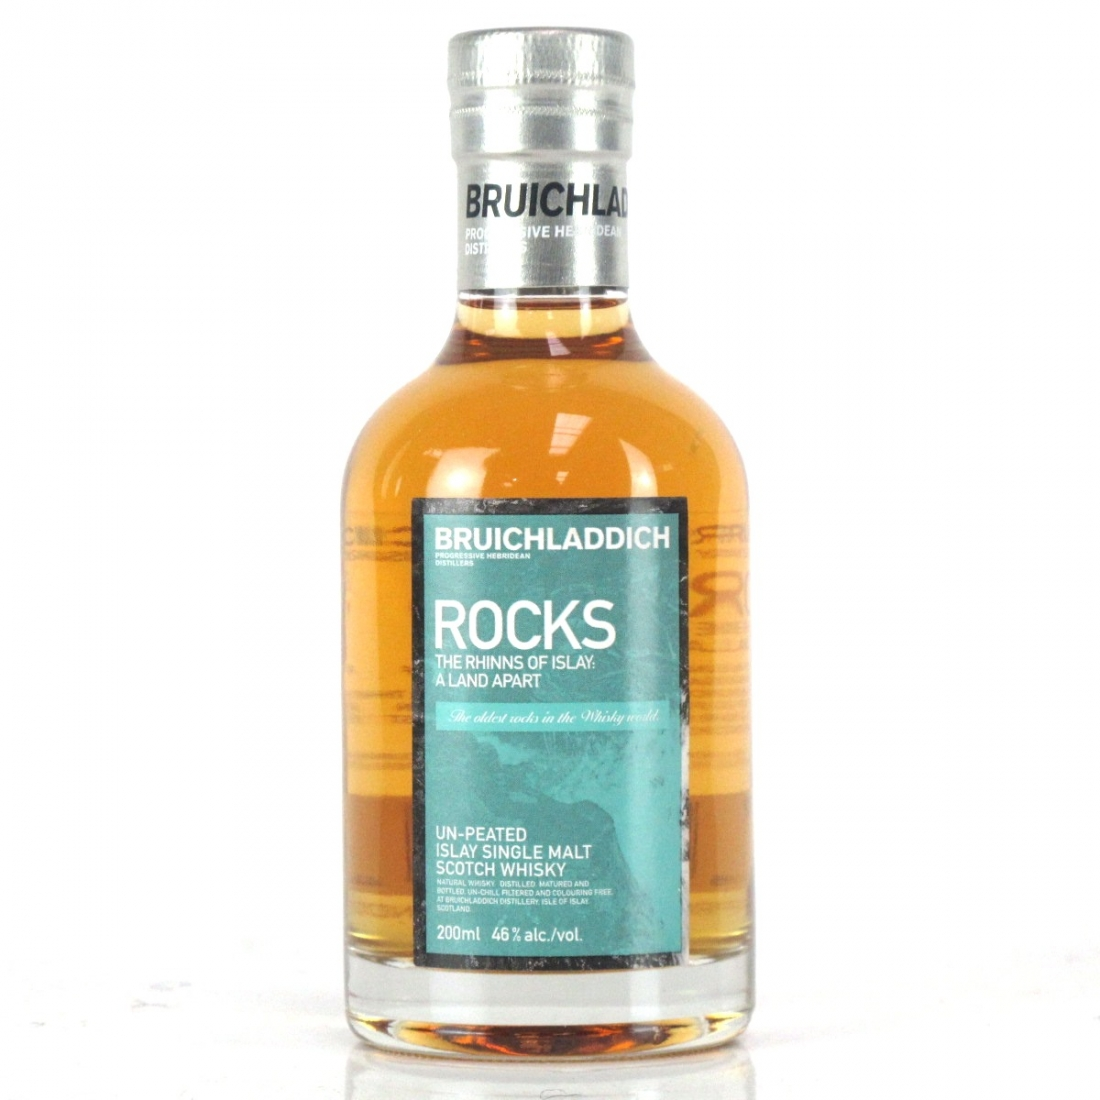 Bruichladdich Rocks 3rd Edition 20cl